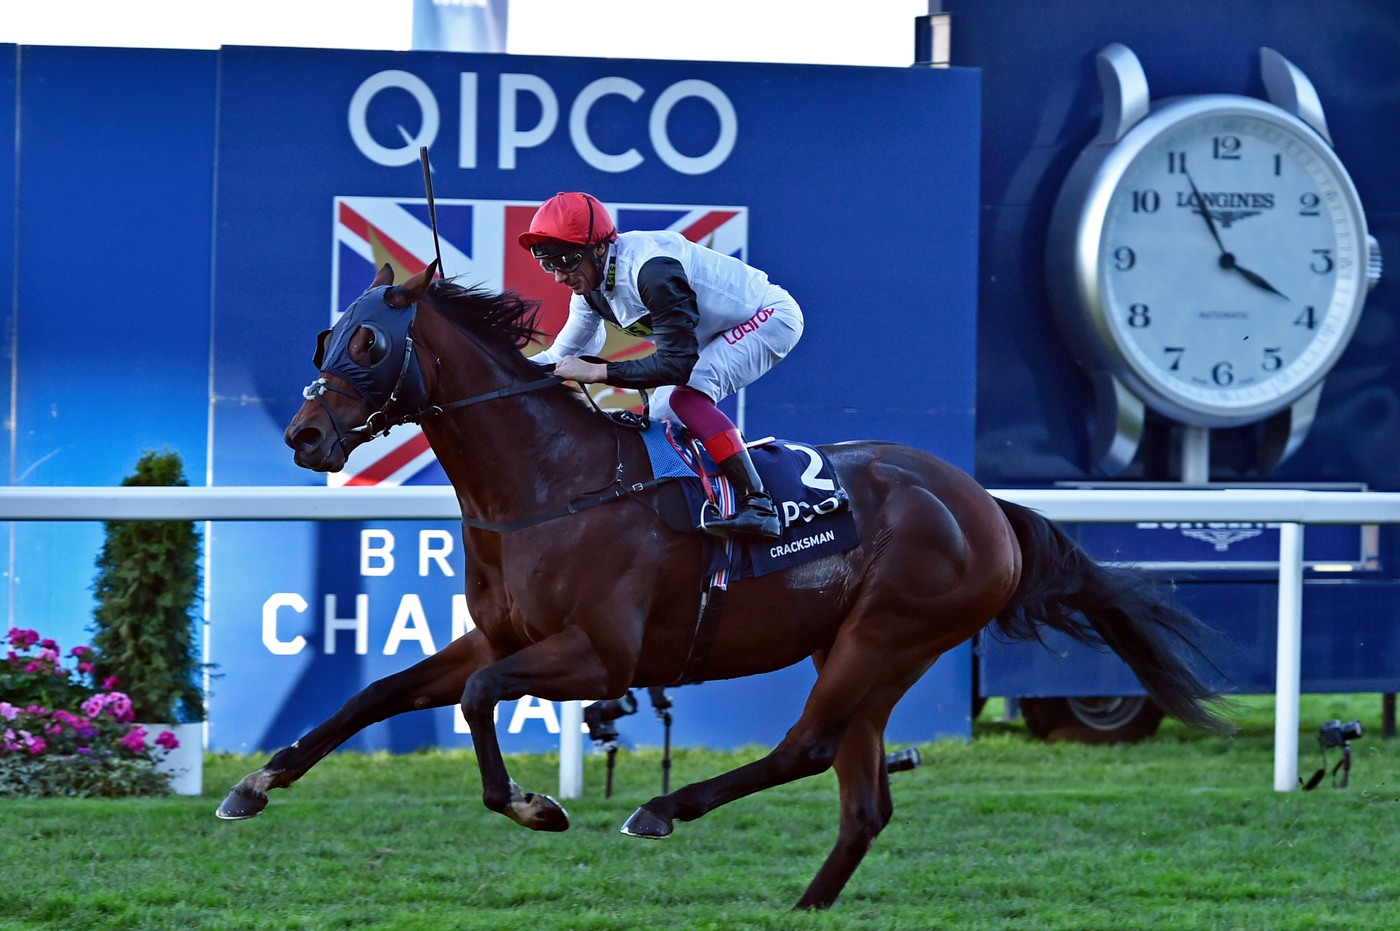 Longines Flat Racing Event: Frankie Dettori Crowned the 2018 Longines World's Best Jockey  2